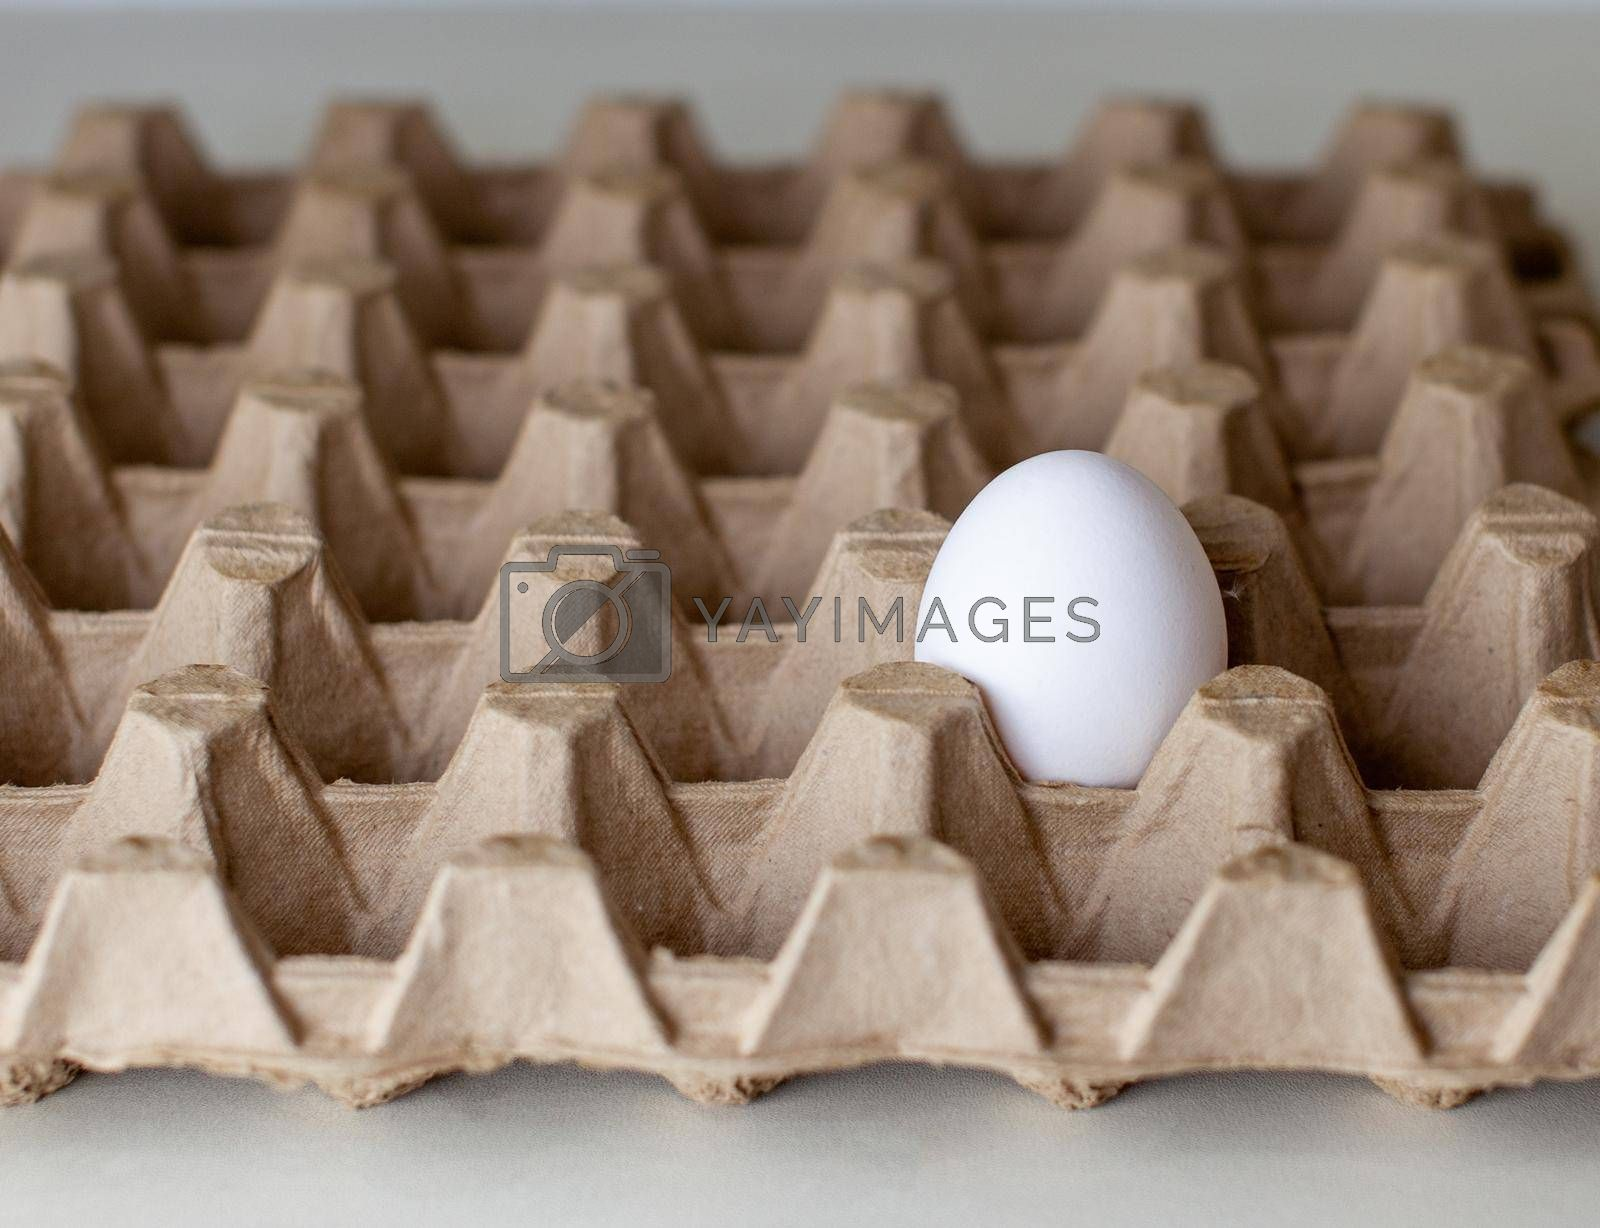 The only egg with a white shell among the empty cells of a large cardboard package, a chicken egg as a valuable nutritious product, the last egg from the tray for carrying fragile items